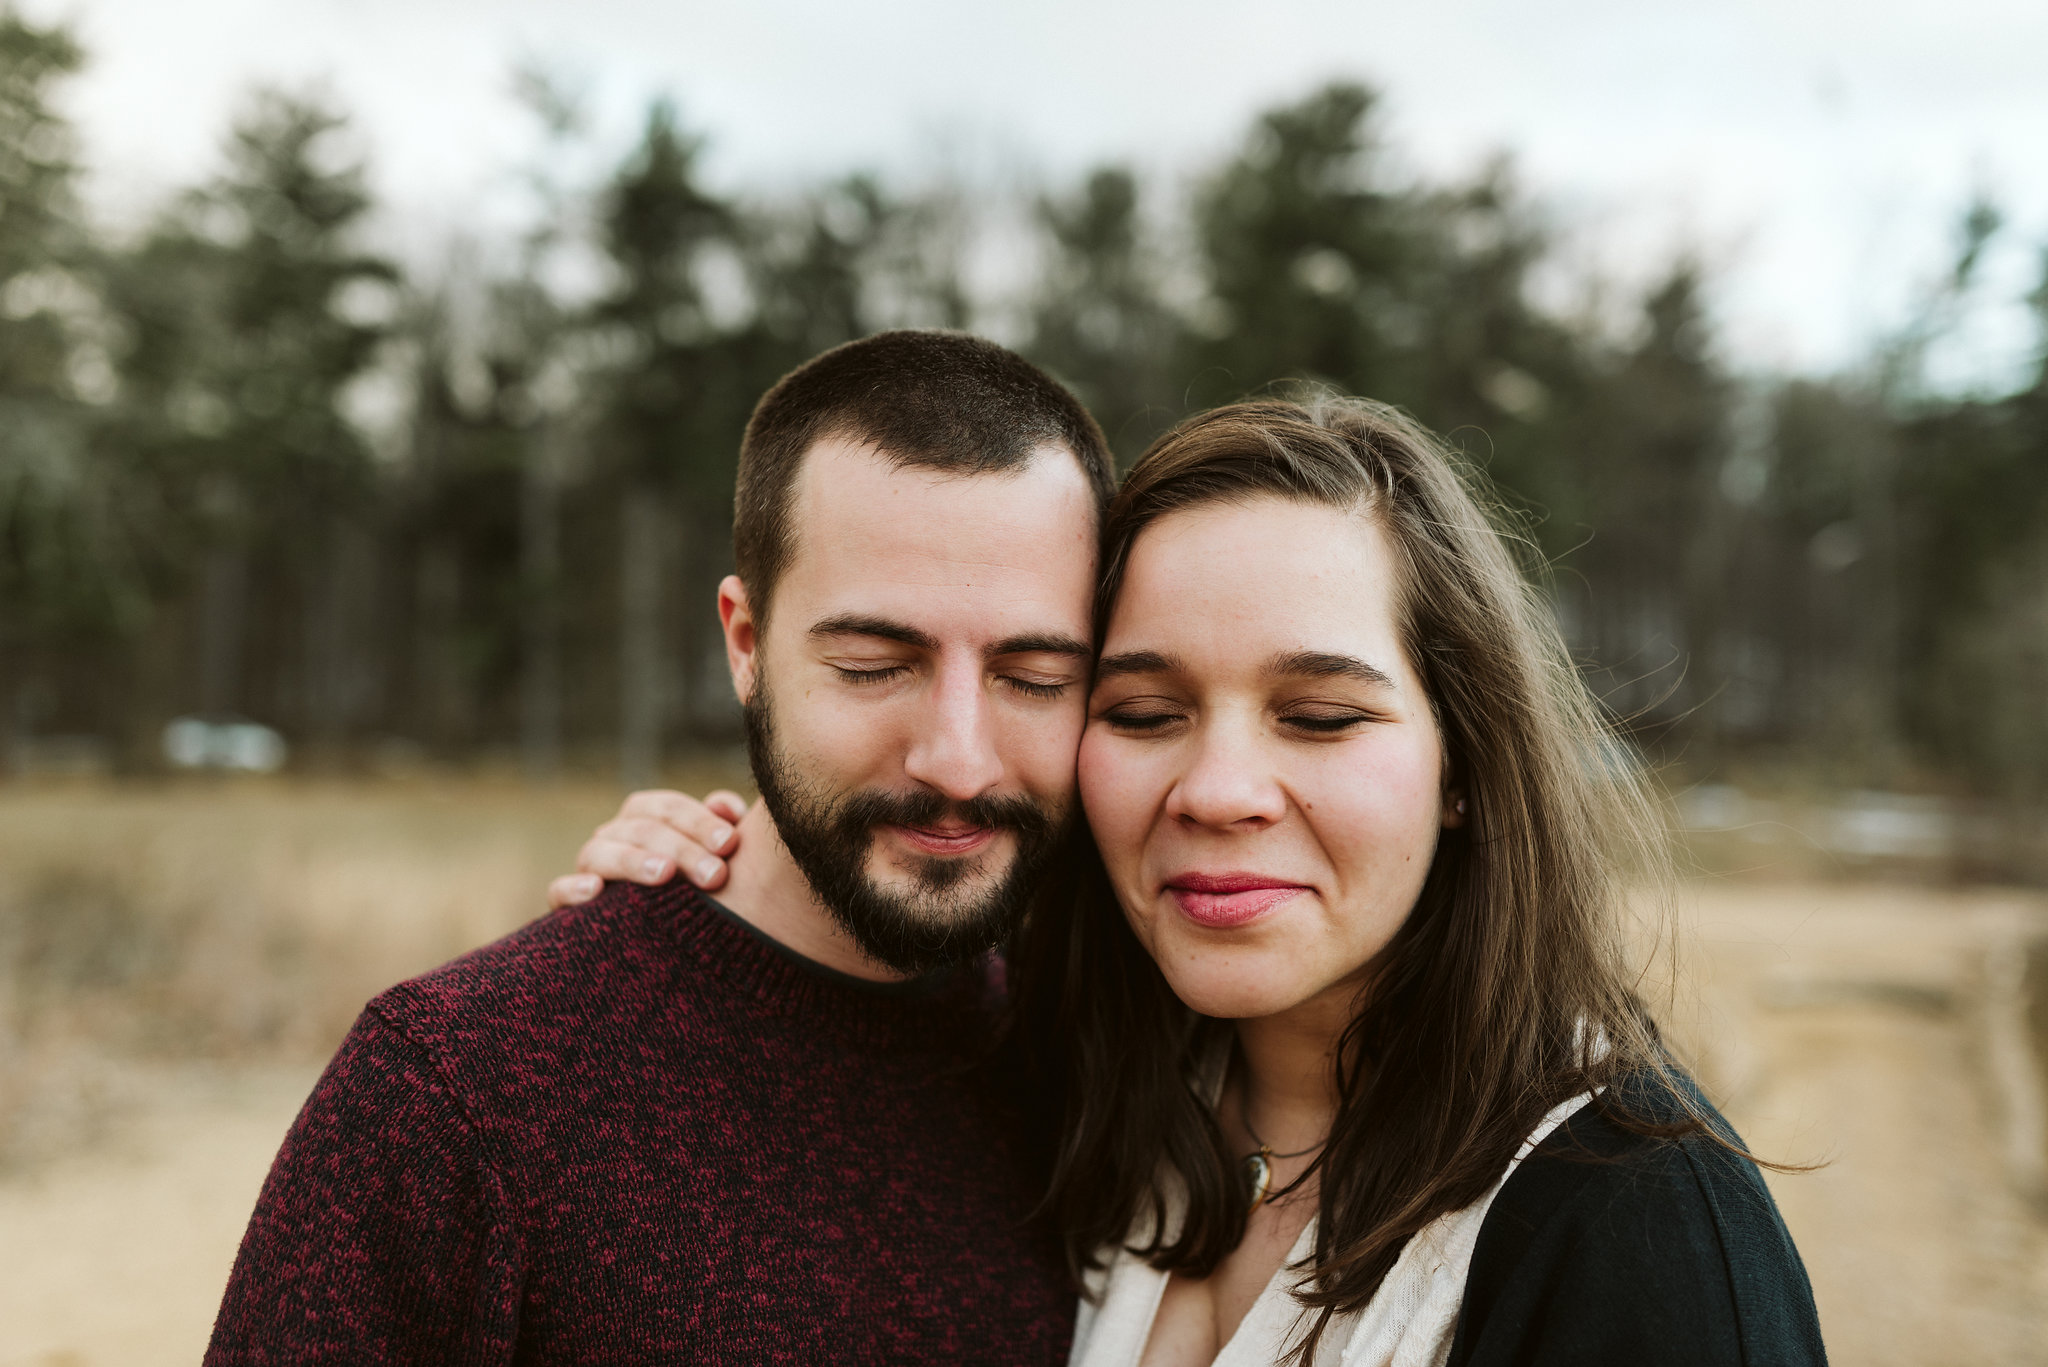 Baltimore County, Loch Raven Reservoir, Maryland Wedding Photographer, Winter, Engagement Photos, Nature, Romantic, Clean and Classic, Bride and Groom Side by Side with Their Eyes Closed